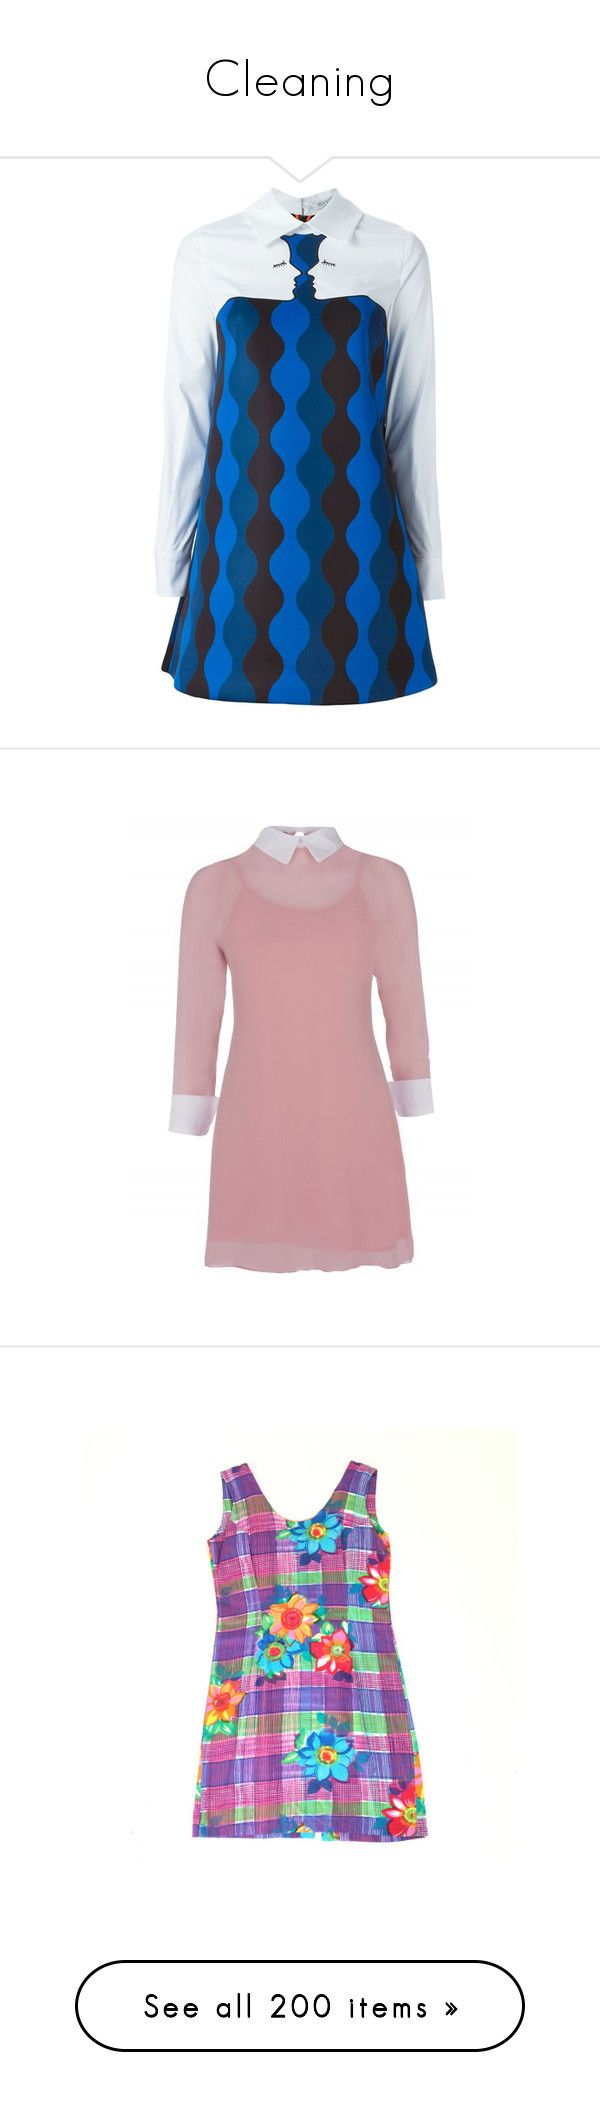 """Cleaning"" by mikki102 ❤ liked on Polyvore featuring dresses, white, white shift dress, white dress, white day dress, vivetta dress, vivetta, pink, going out dresses and pink dress"